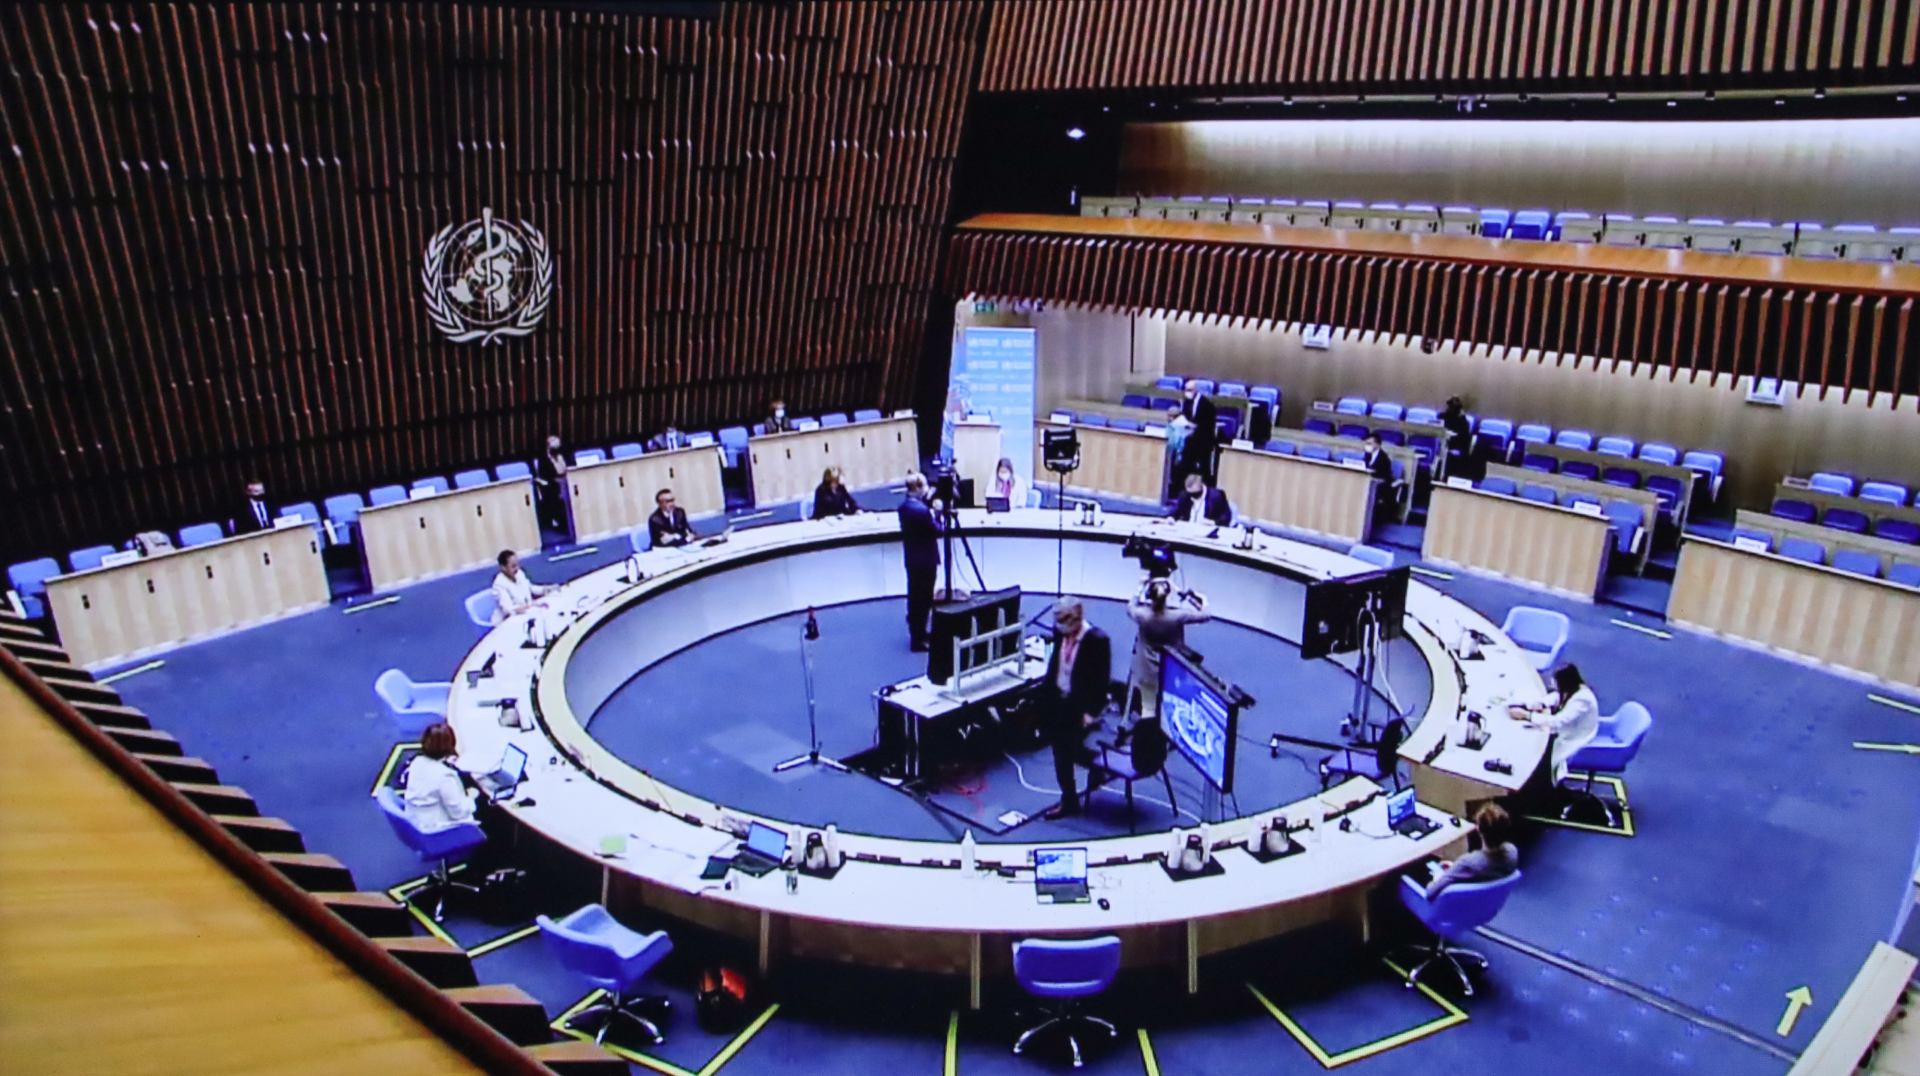 Photo taken in Brussels, Belgium on May 24, 2021 shows the live stream of the 74th World Health Assembly held at the World Health Organization (WHO) headquarters in Geneva, Switzerland. The 74th World Health Assembly (WHA) kicked off on Monday to stress t